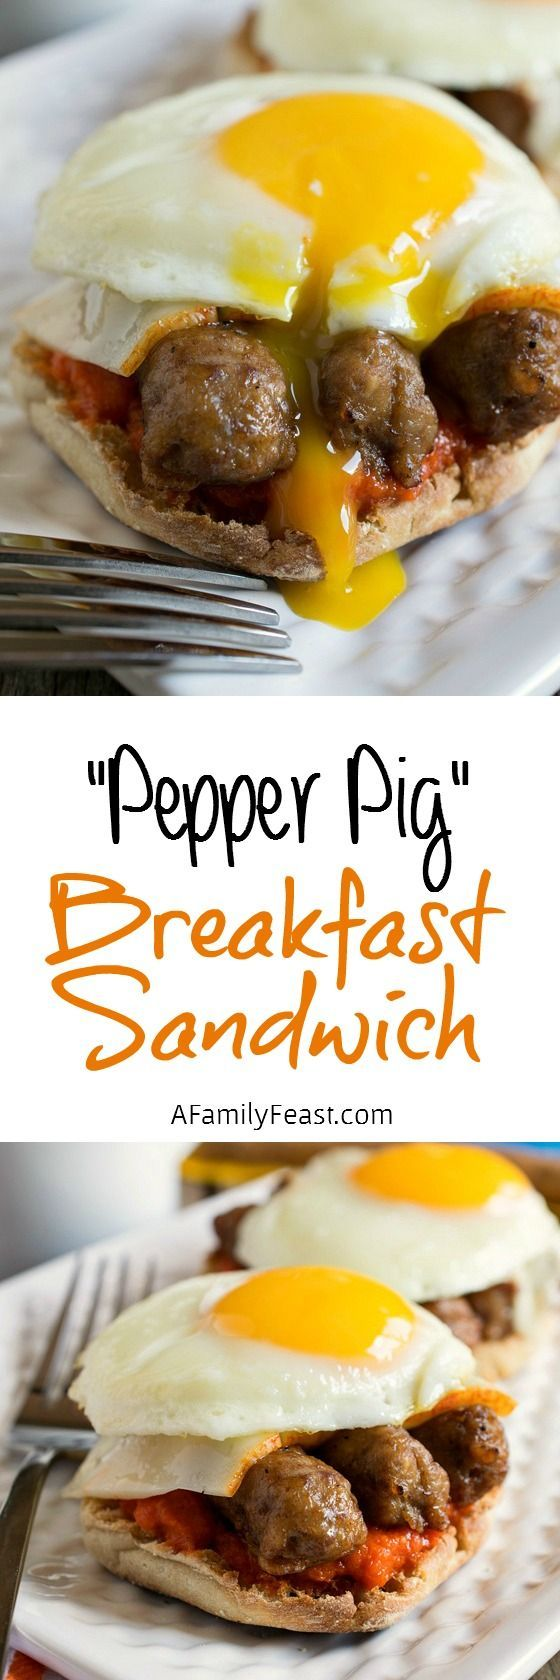 Our delicious Pepper Pig Breakfast Sandwich has sausage links on an English muffin smothered in a red pepper sauce with cheese.  All you'll need is some delicious Zaycon Fresh Pork Sausage Links: https://www.zayconfresh.com/products/?utm_source=pinterest.com&utm_medium=zaycon&utm_term=8242015&utm_content=post&utm_campaign=139